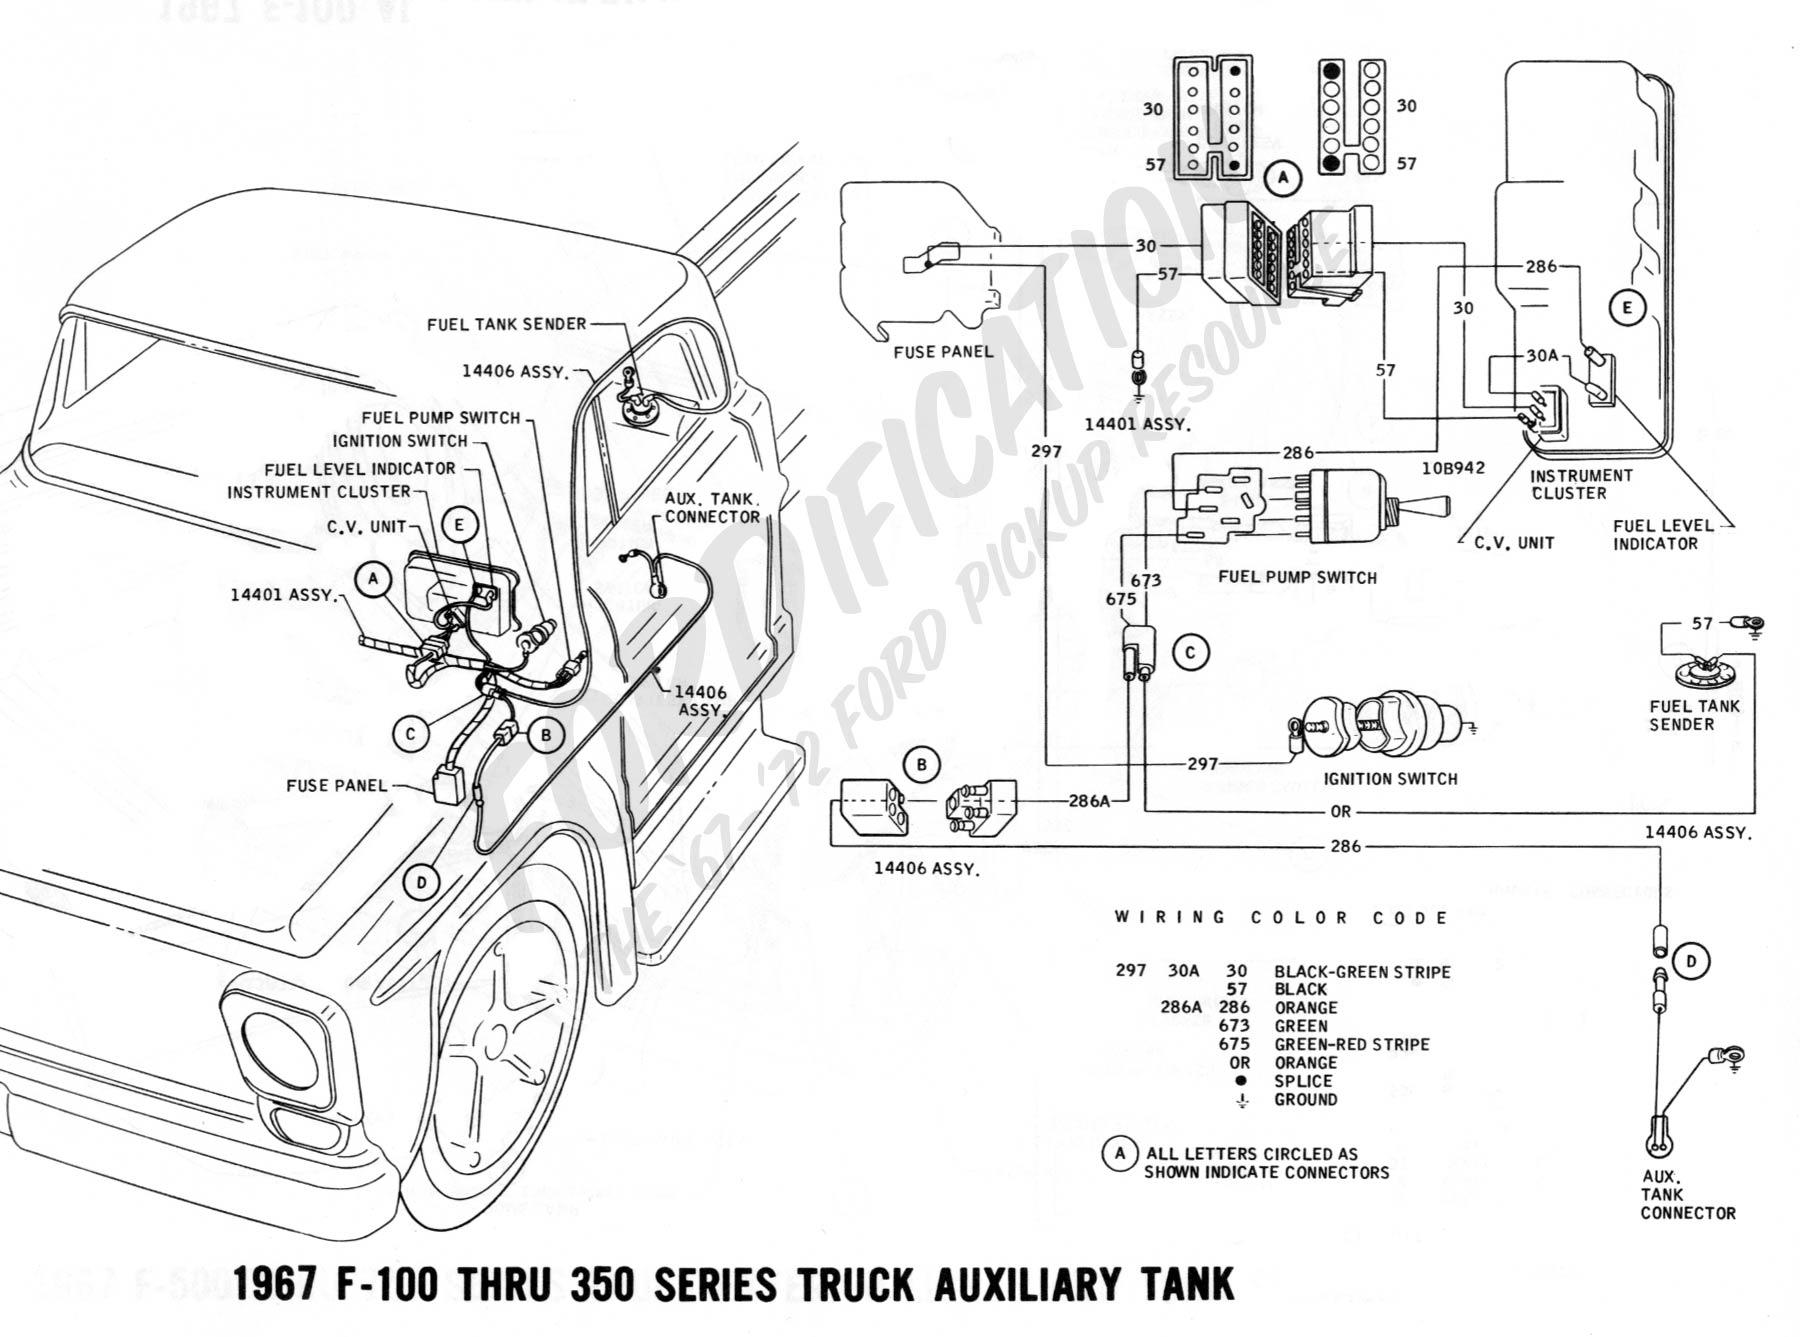 wiring 1967auxtank ford truck technical drawings and schematics section h wiring GM Turn Signal Switch Diagram at suagrazia.org